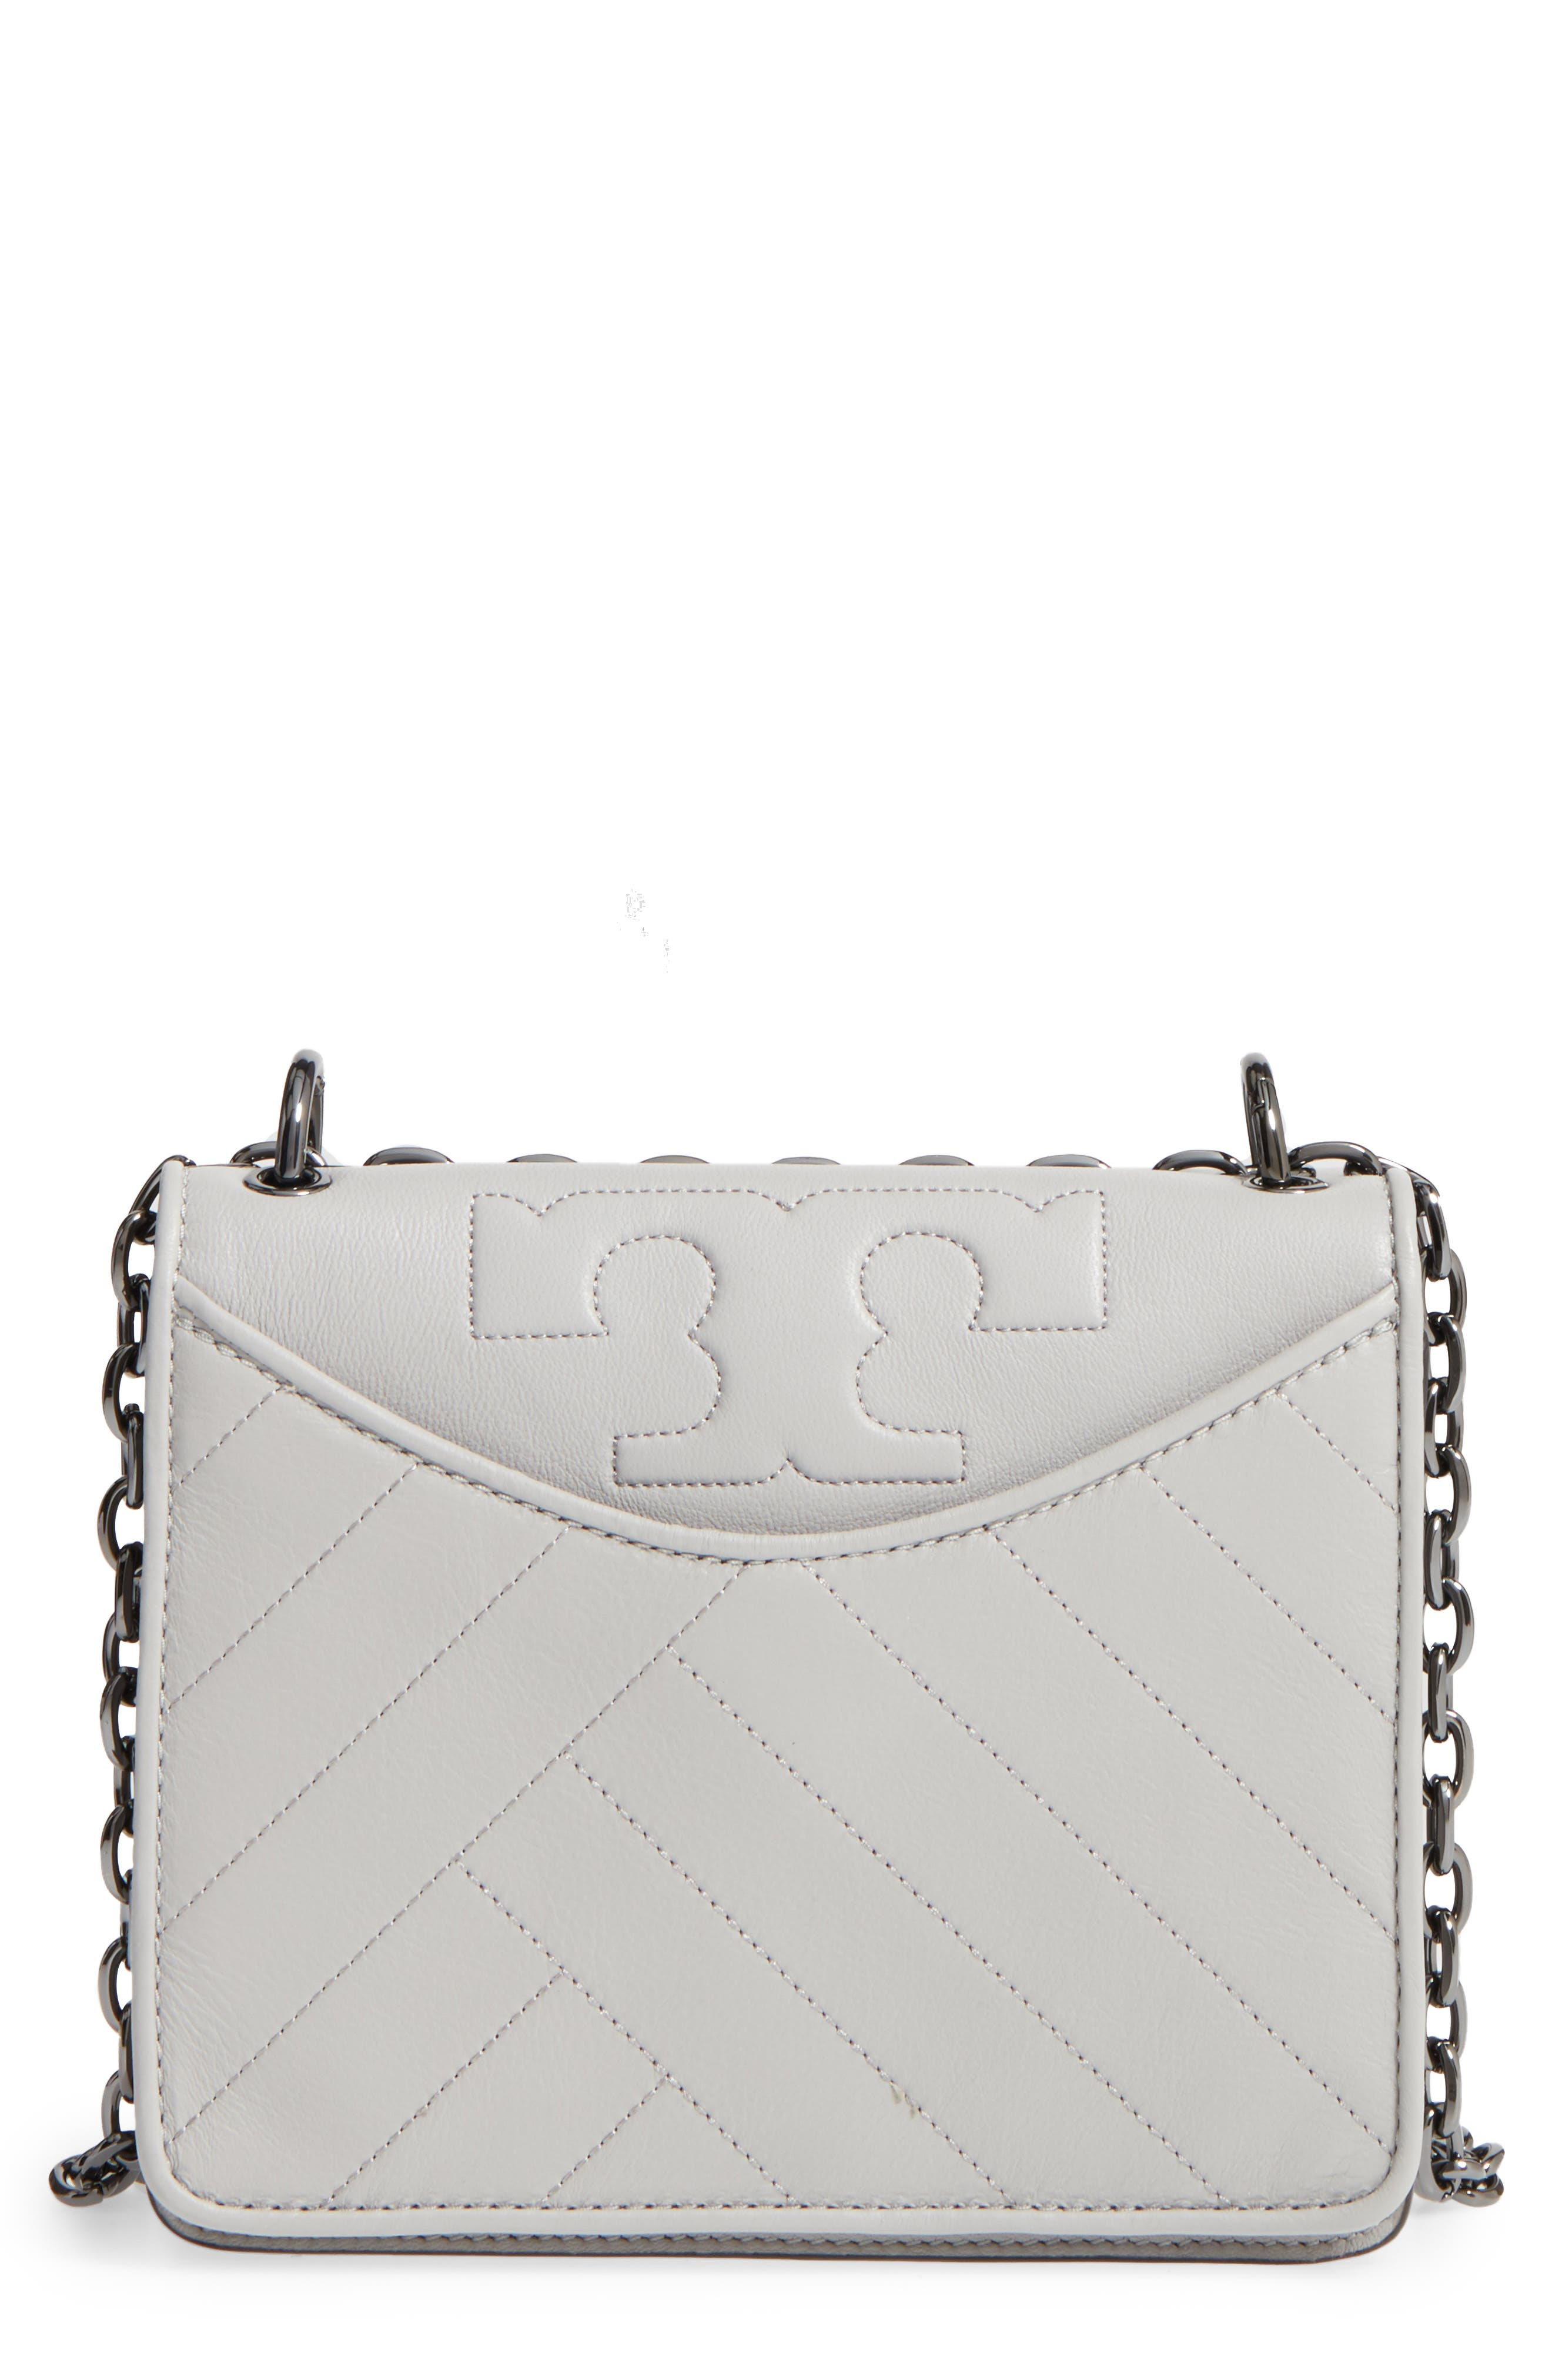 Alternate Image 1 Selected - Tory Burch Chevron Quilted Leather Crossbody Bag